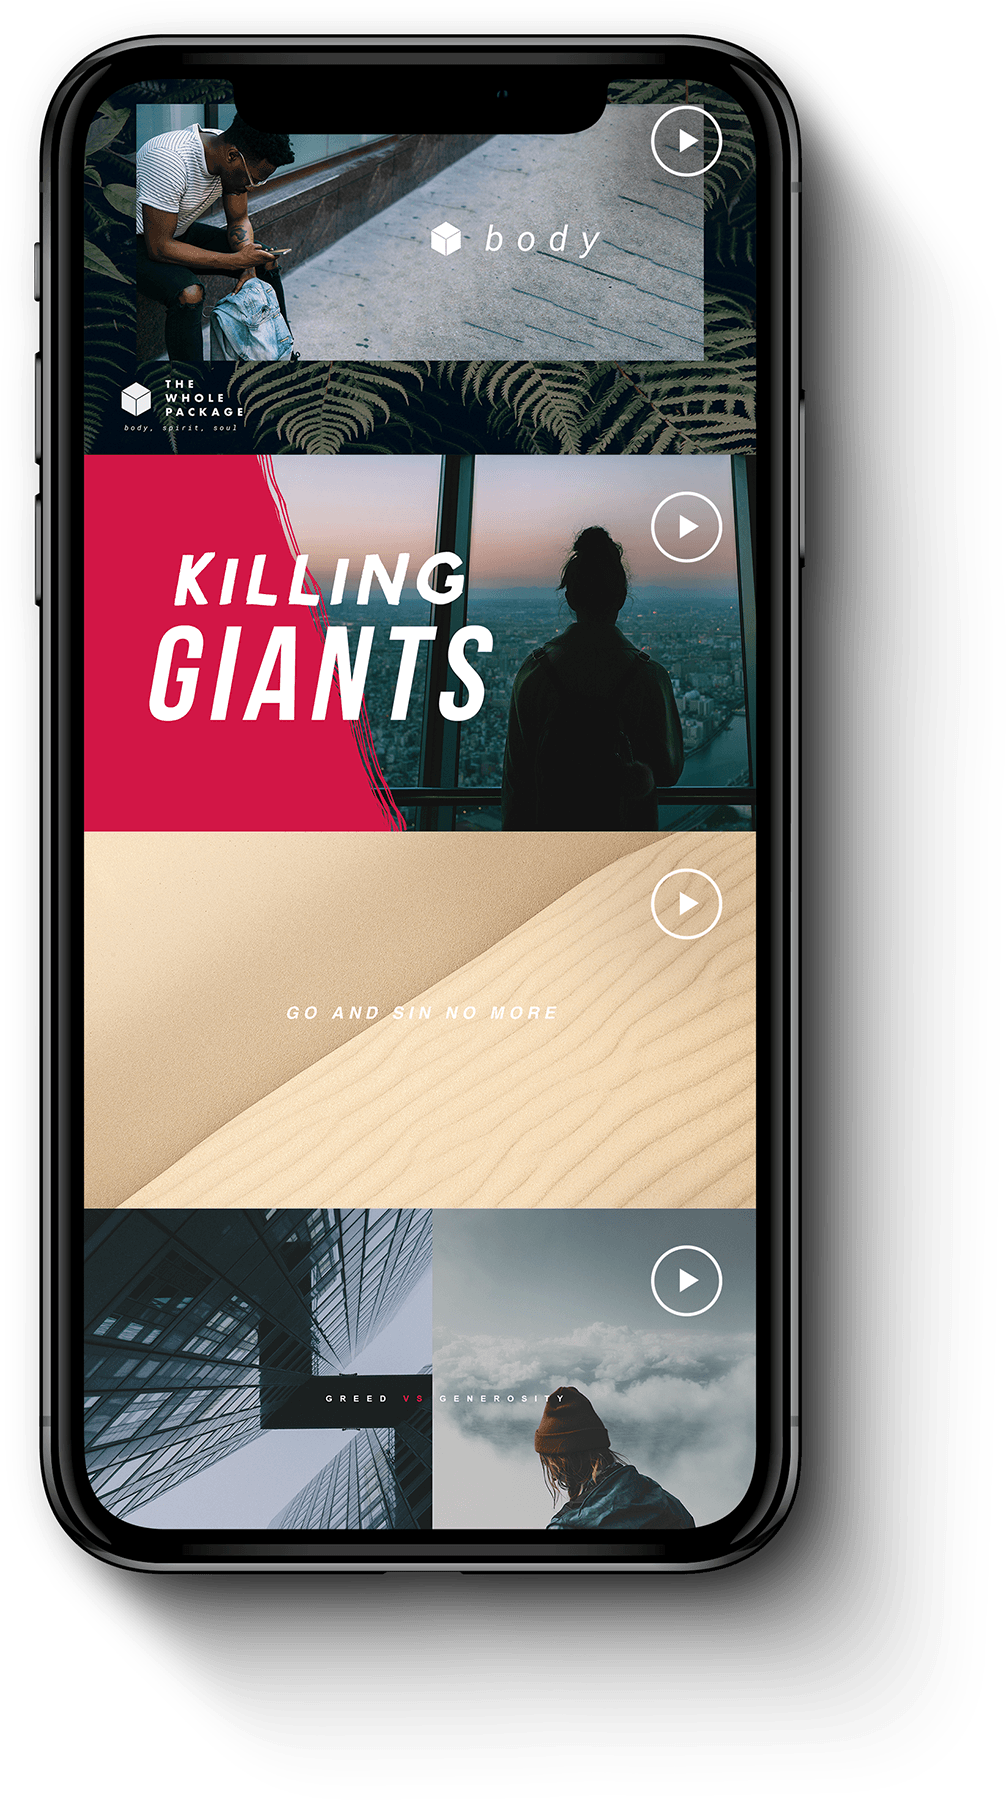 An Smartphone displaying some of the weekly podcasts.